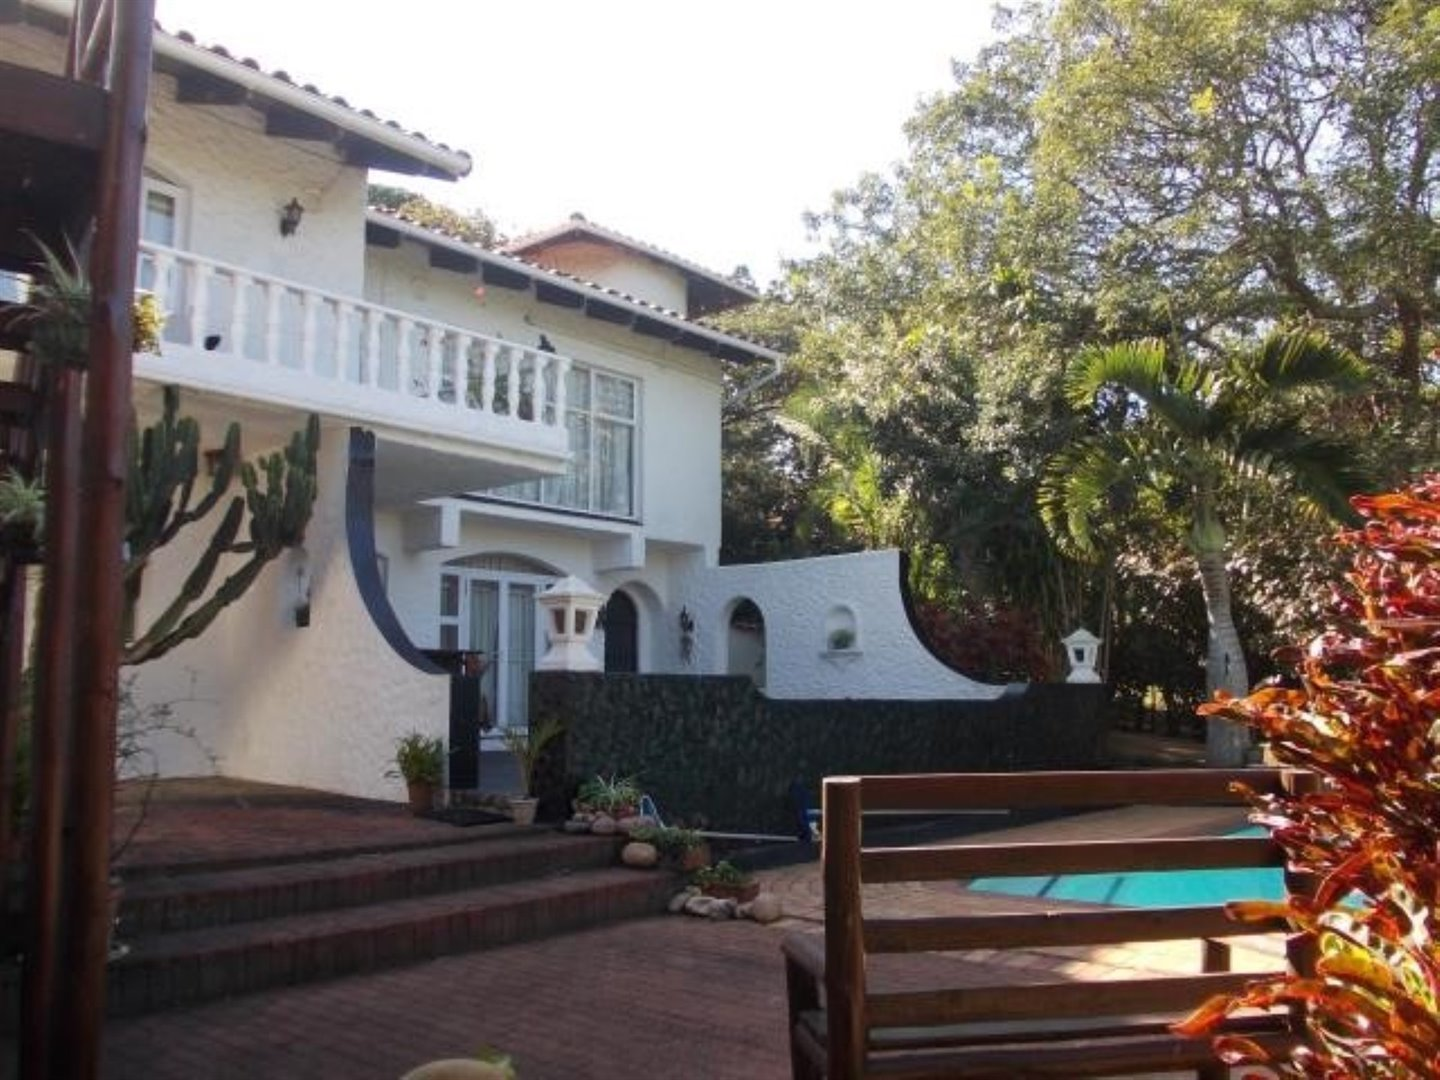 Clansthal property for sale. Ref No: 12736980. Picture no 26